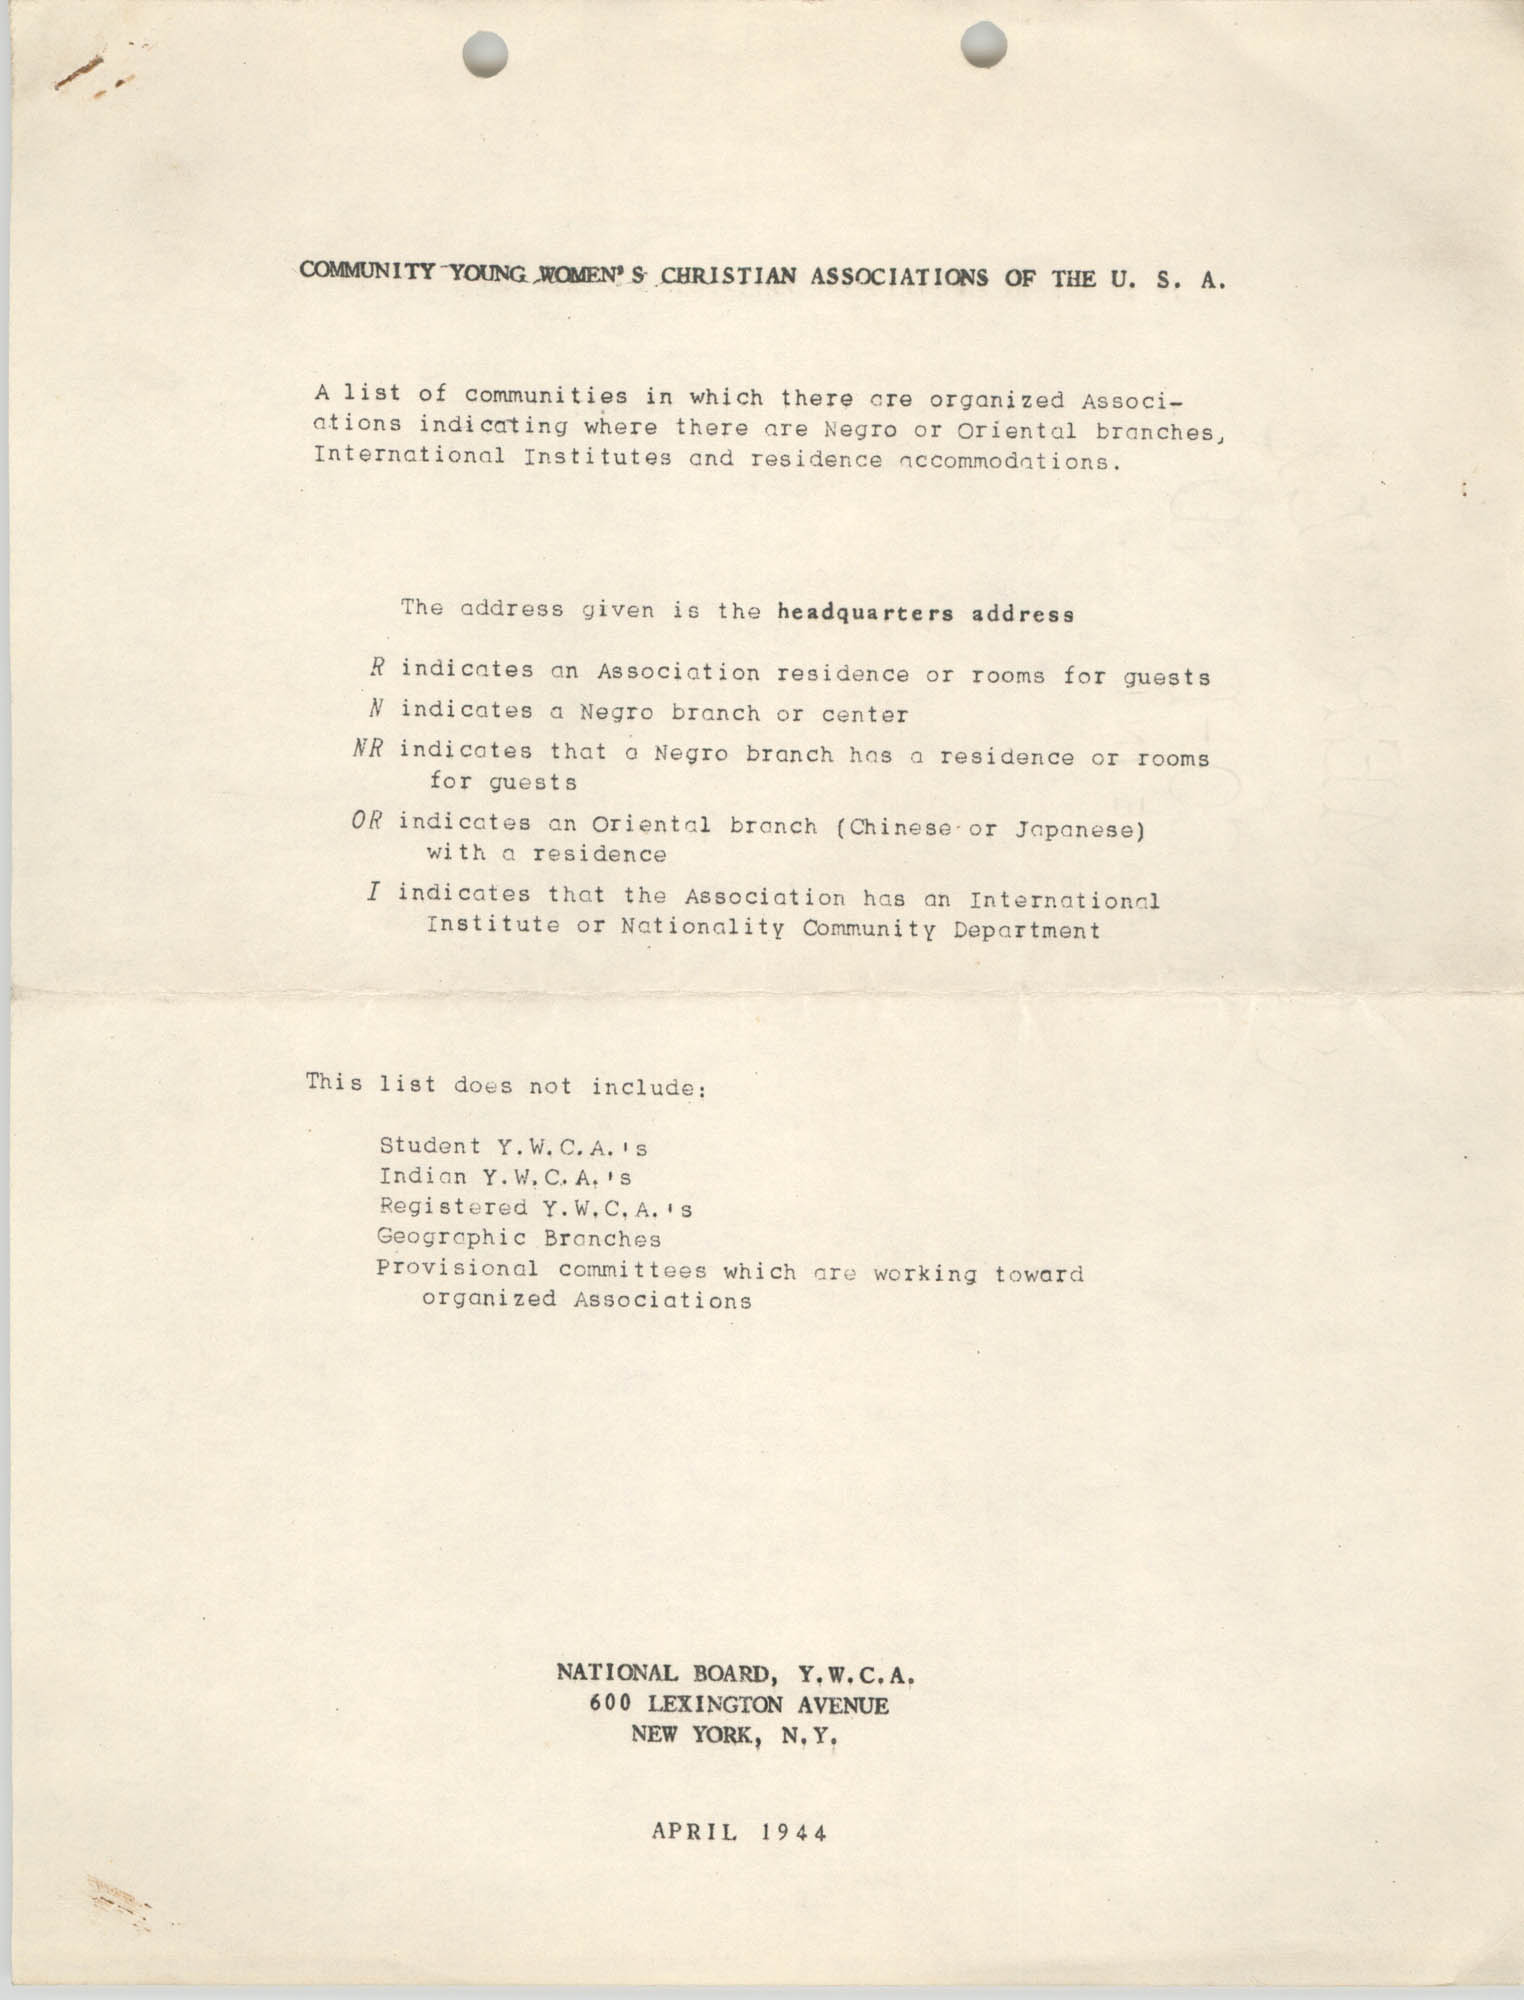 Community Young Women's Christian Associations of the U.S.A., Community Headquarters List, April 1944